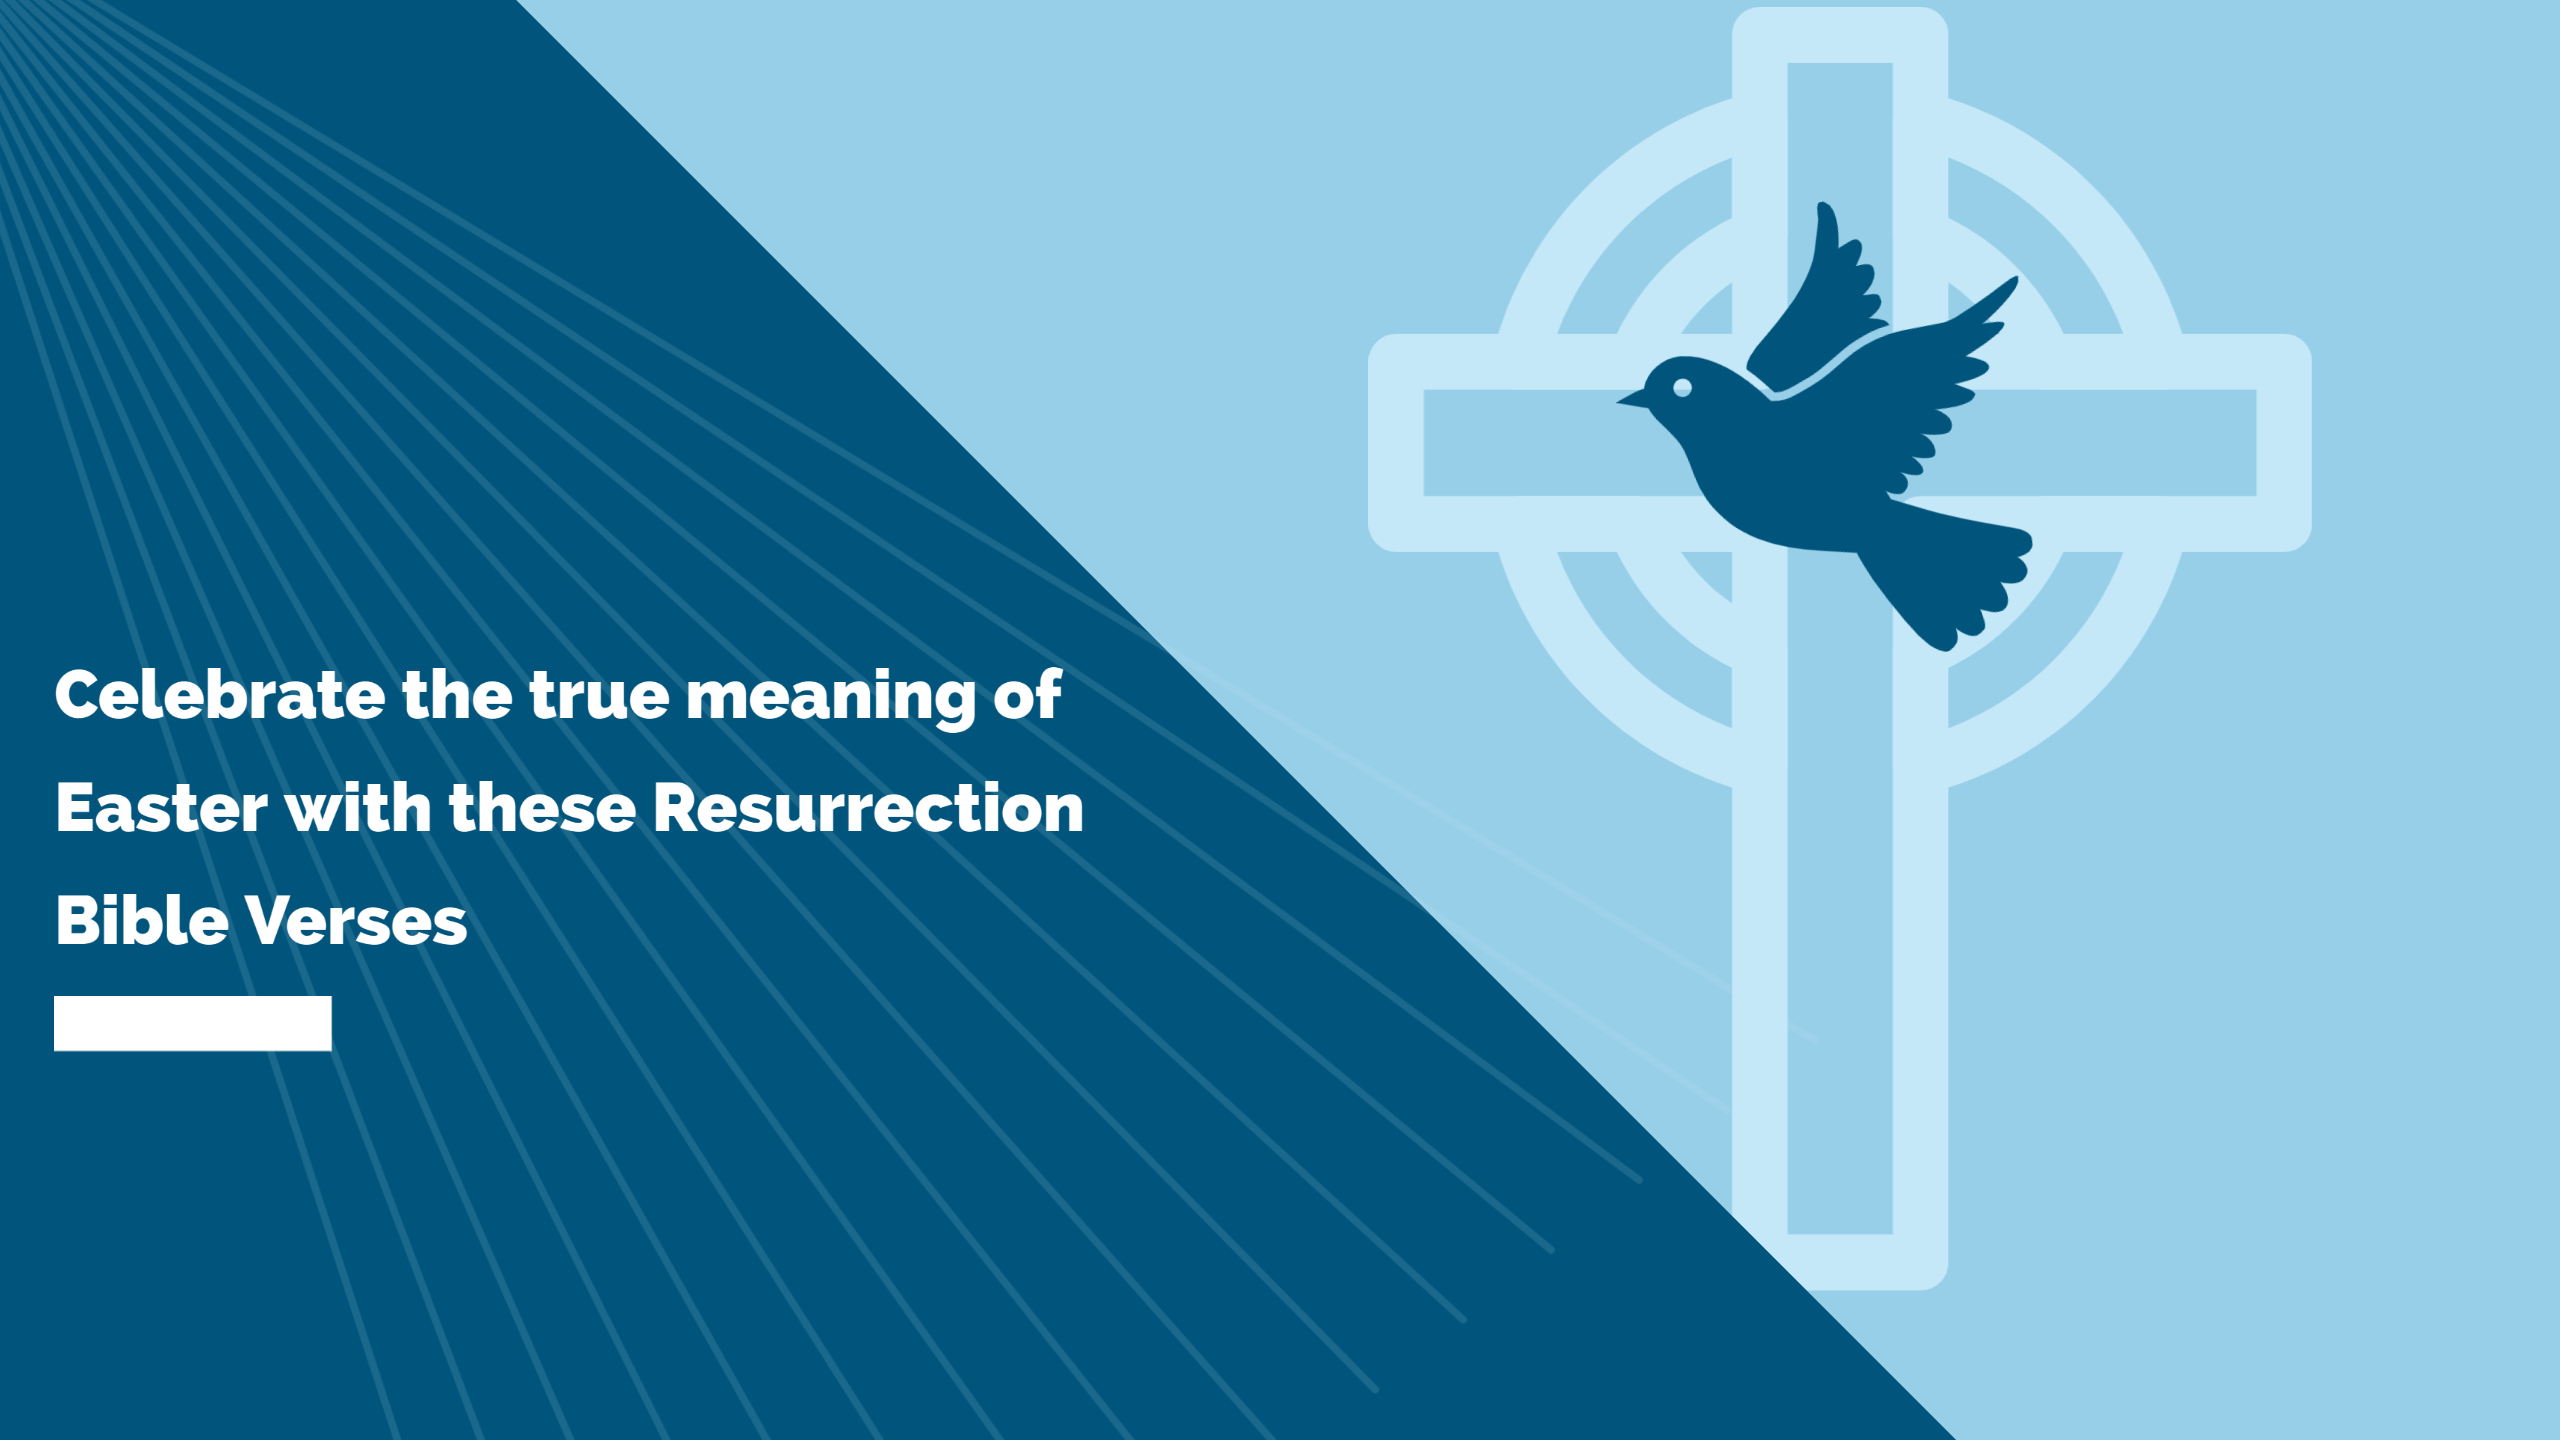 Celebrate the true meaning of Easter with these Resurrection Bible Verses